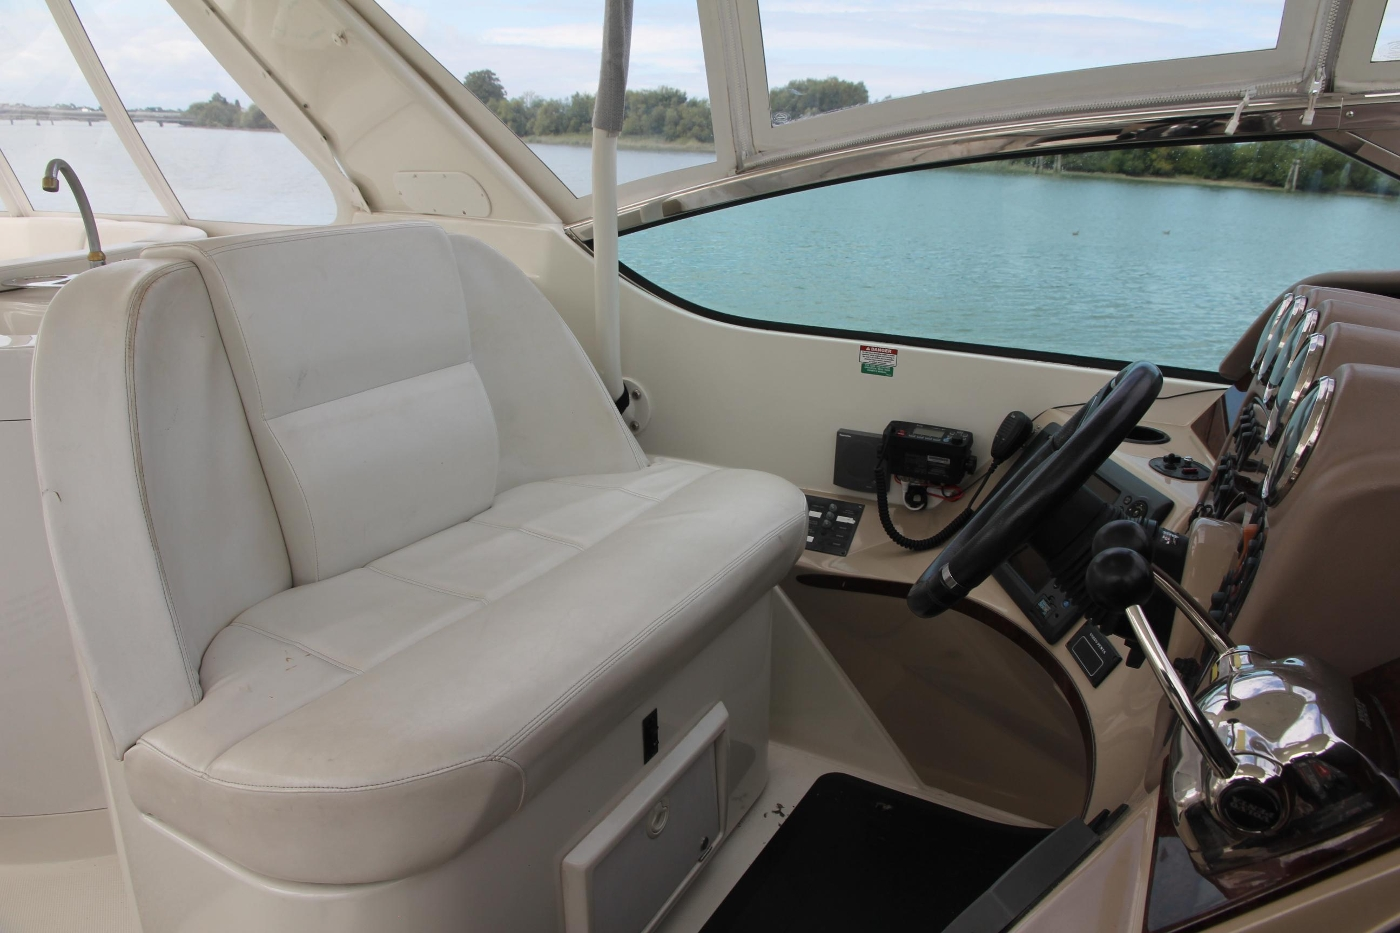 2005 Carver 560 Voyager Pilothouse, Double Helm Seat